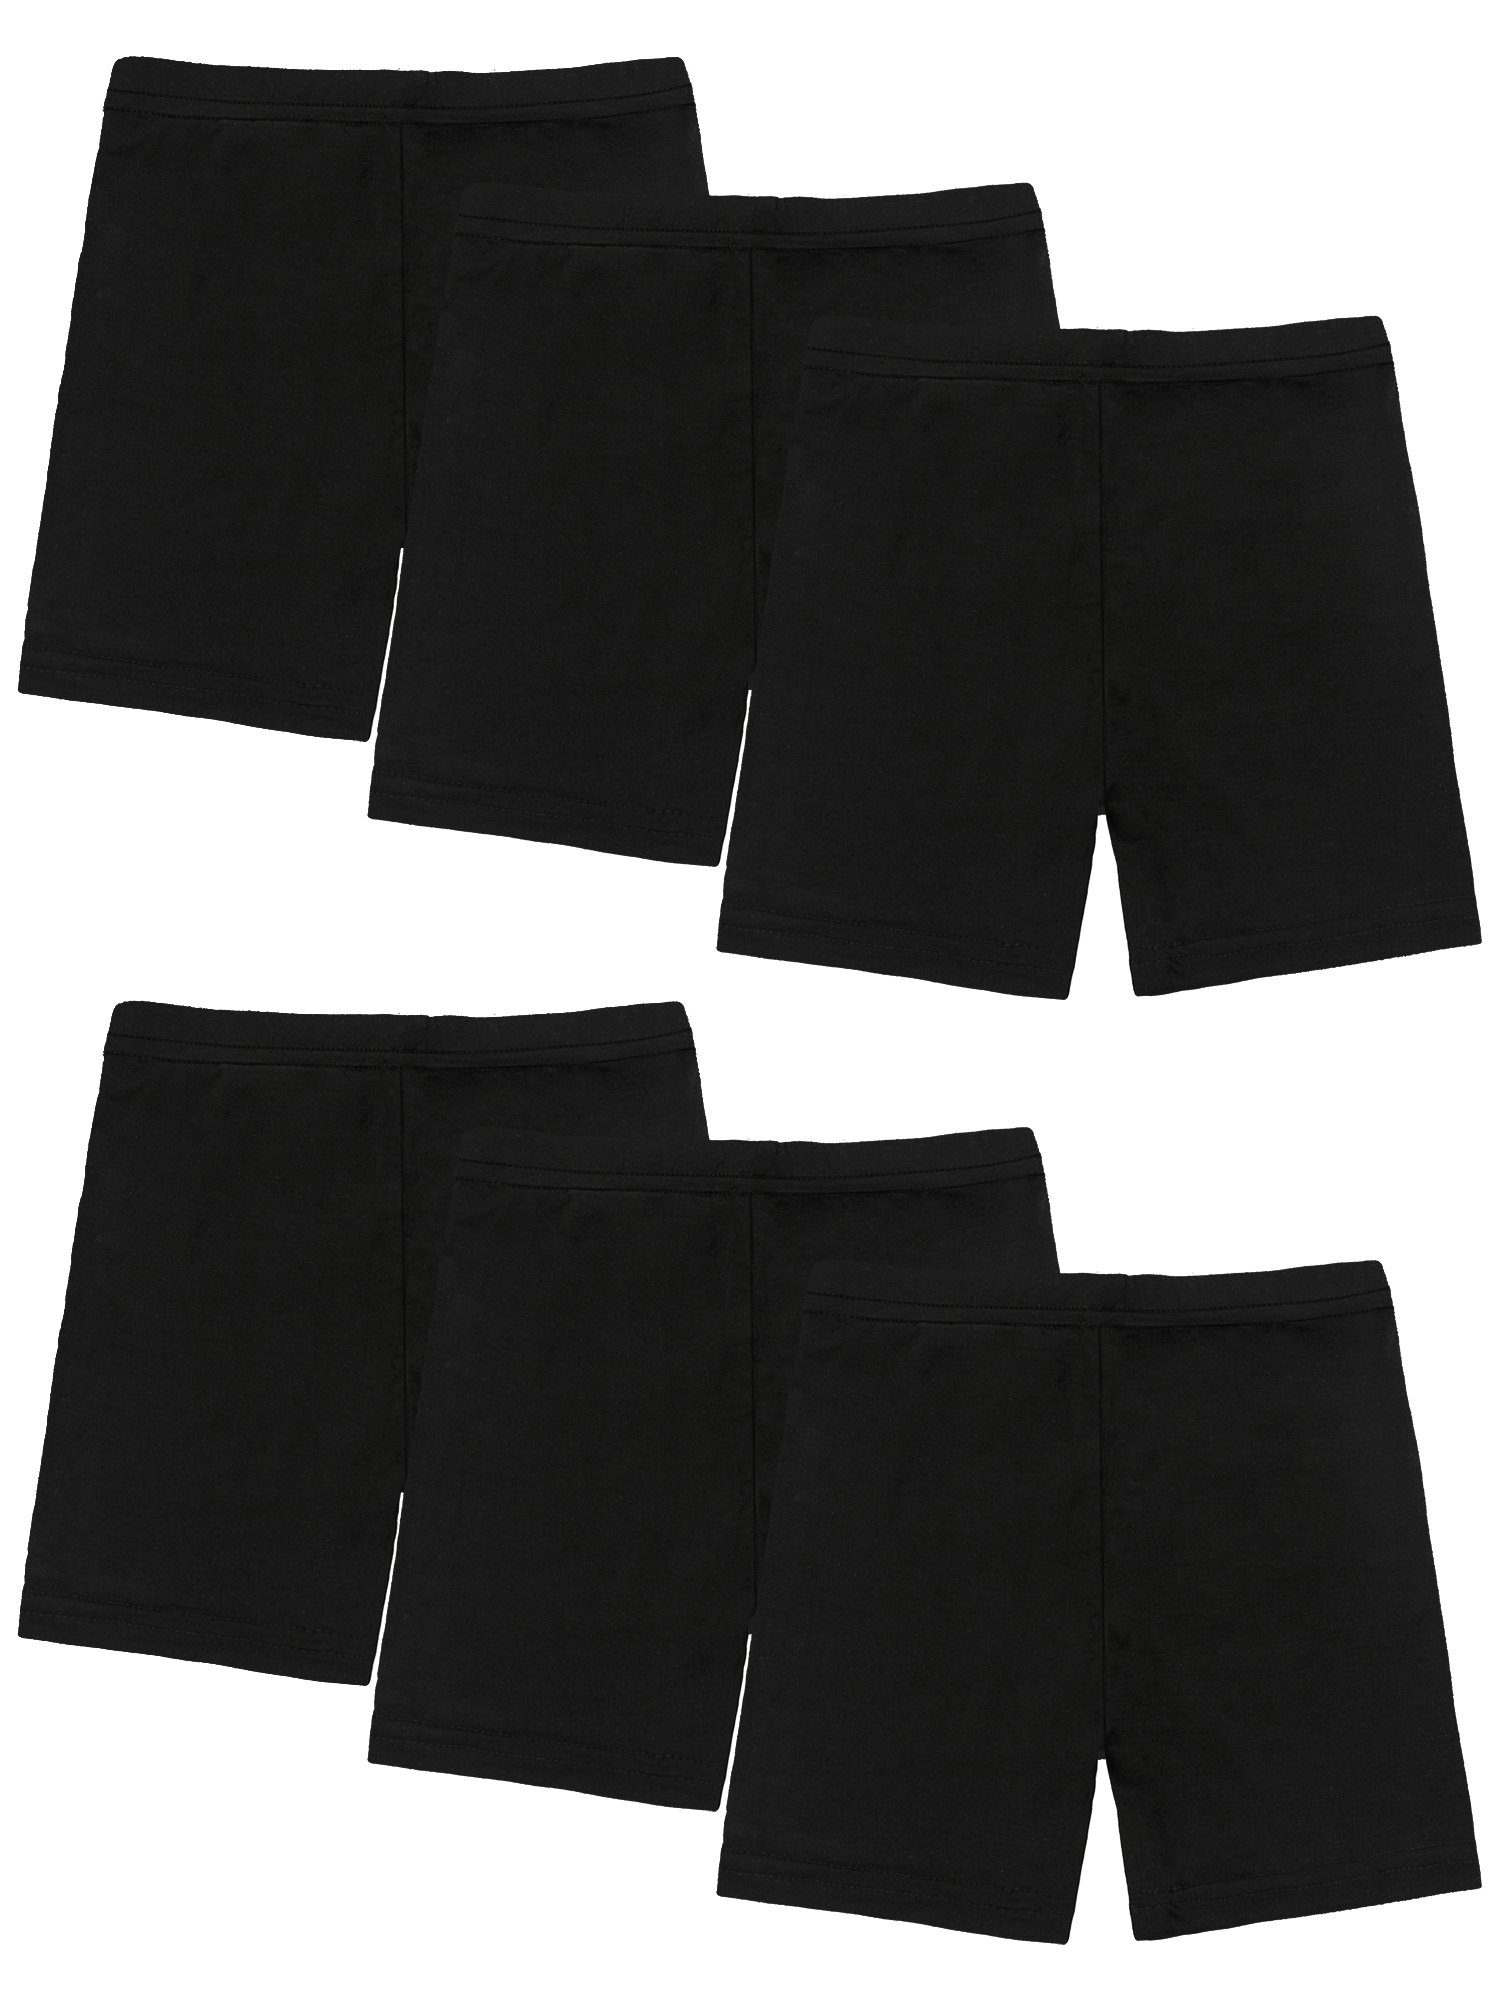 Resinta 6 Pack Black Dance Shorts Girls Bike Short Breathable and Safety 6 Color (2T/3T, Black)